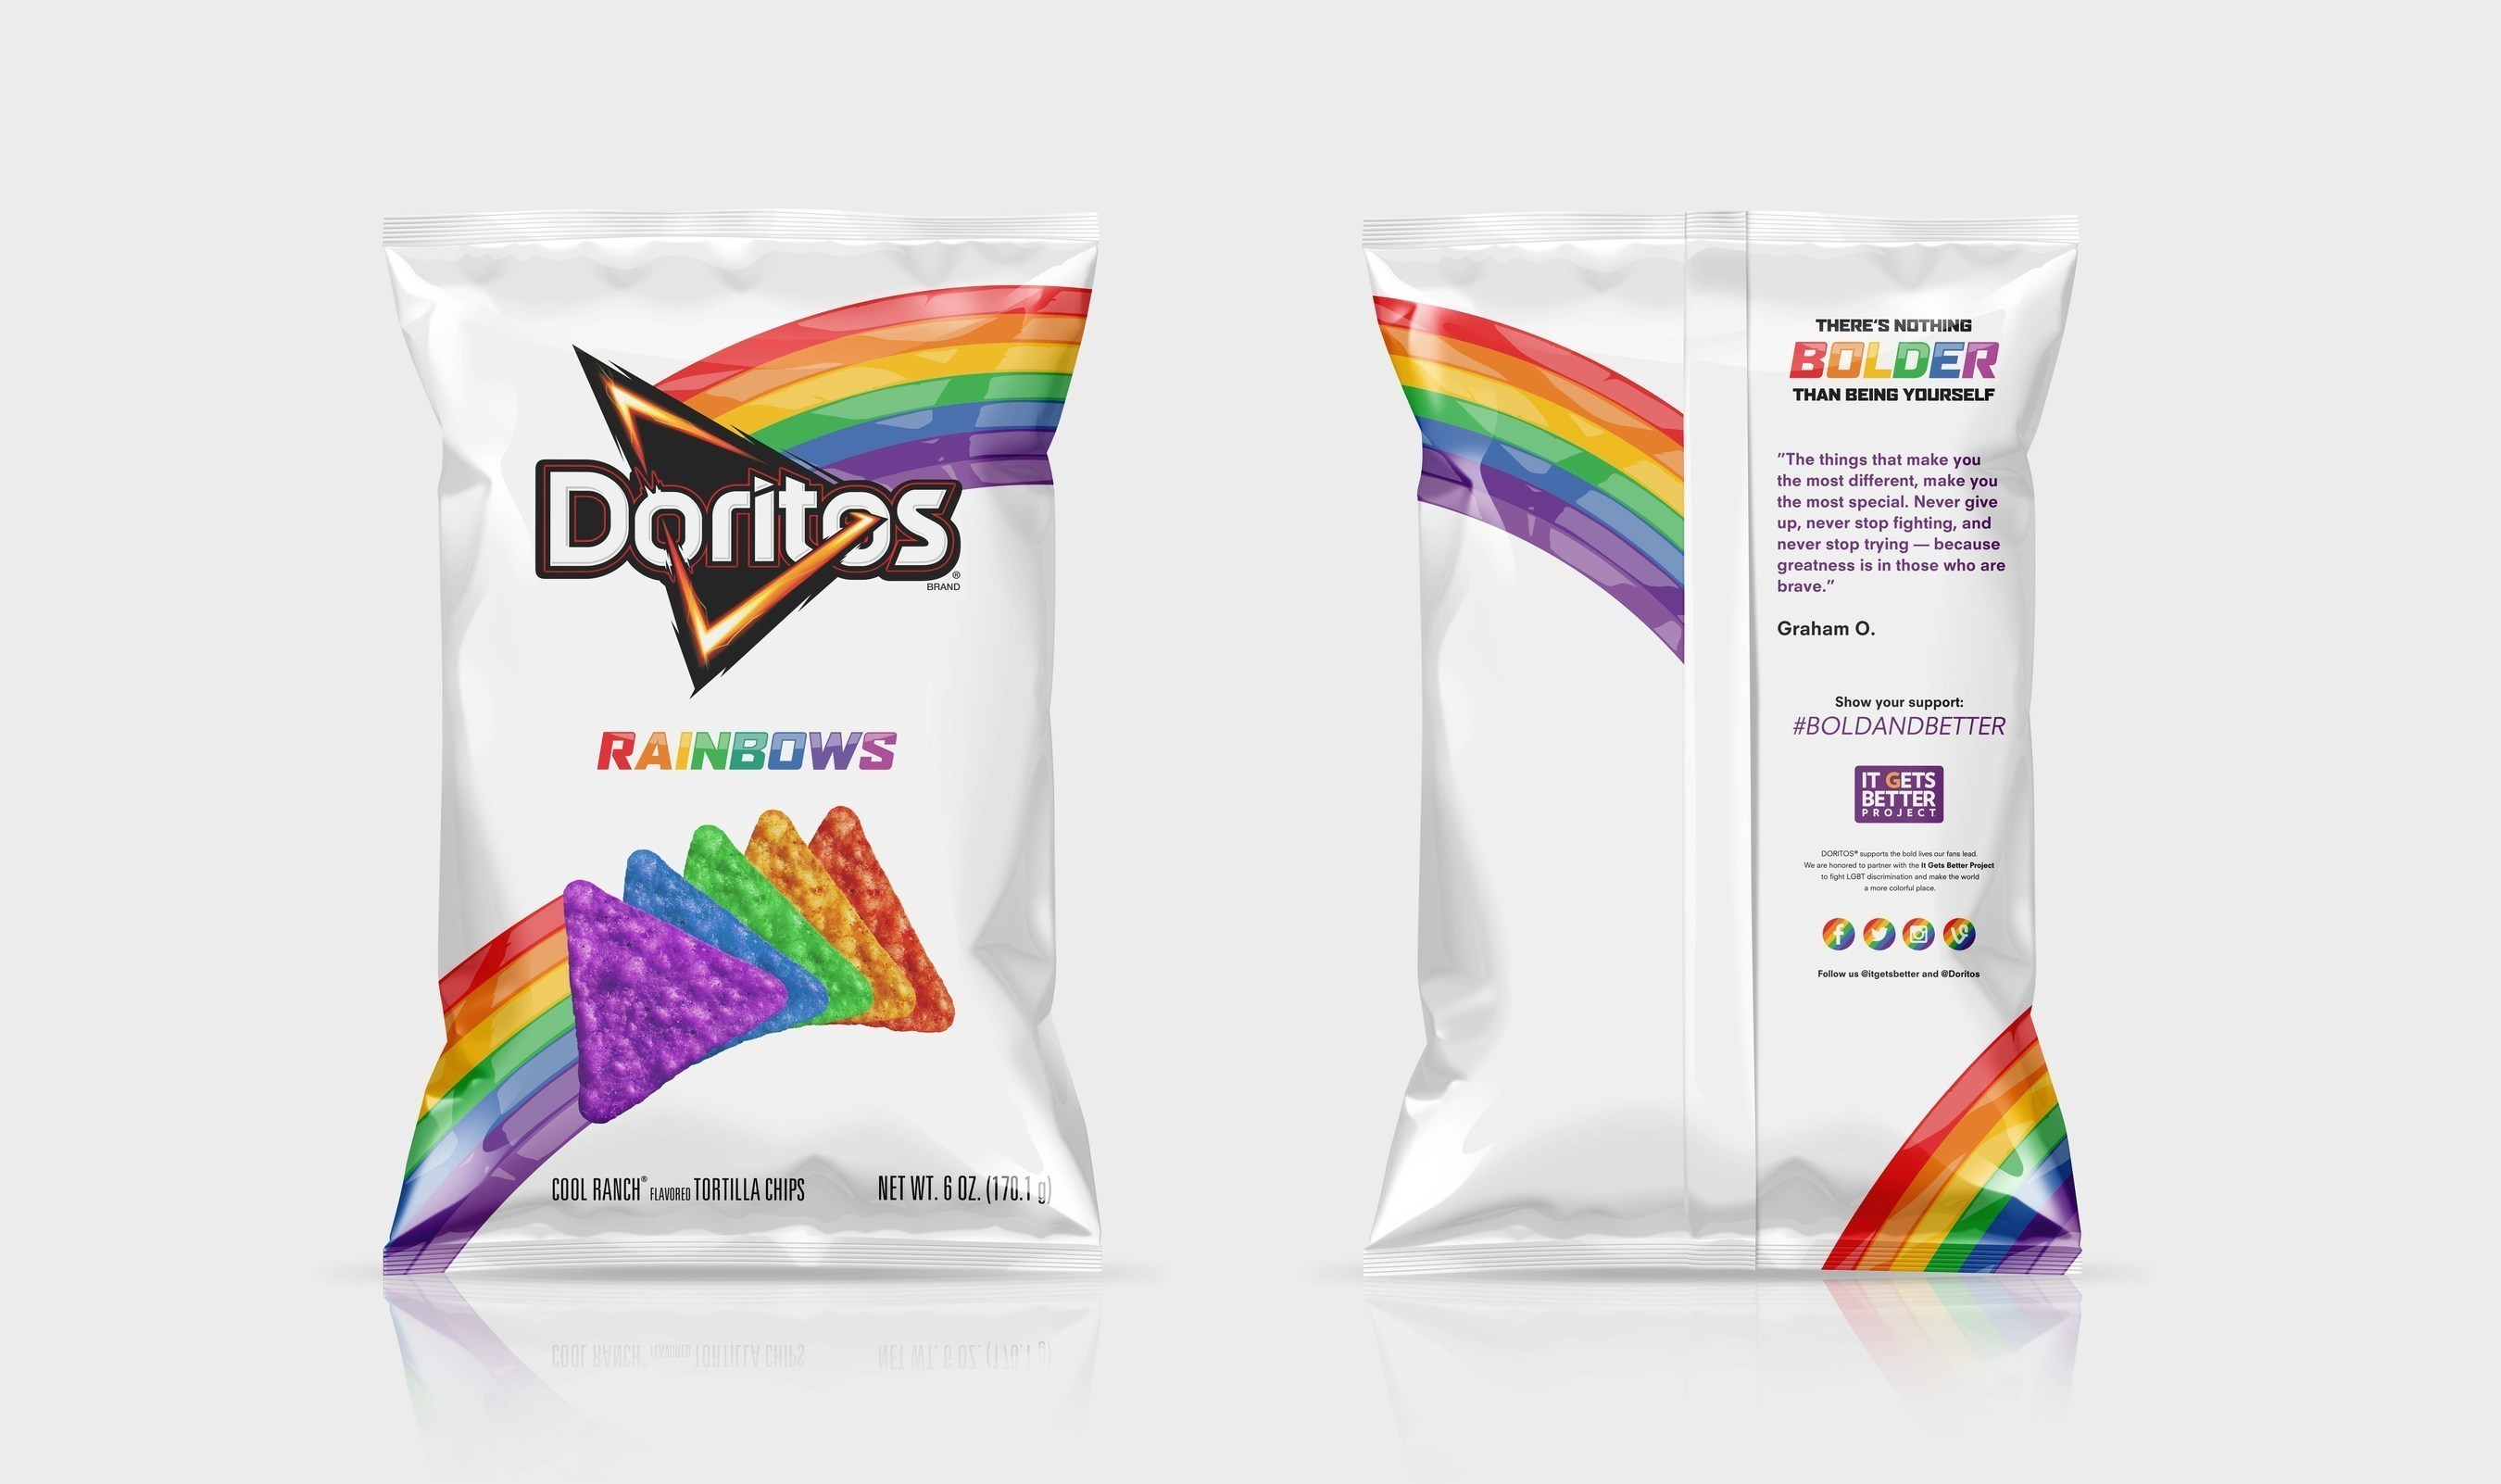 The Doritos brand, in partnership with the It Gets Better Project, launches Doritos Rainbows chips, a new, limited-edition product to celebrate the LGBT community. ; Get your bag while supplies last and learn more at: ItGetsBetter.org/DoritosRainbows